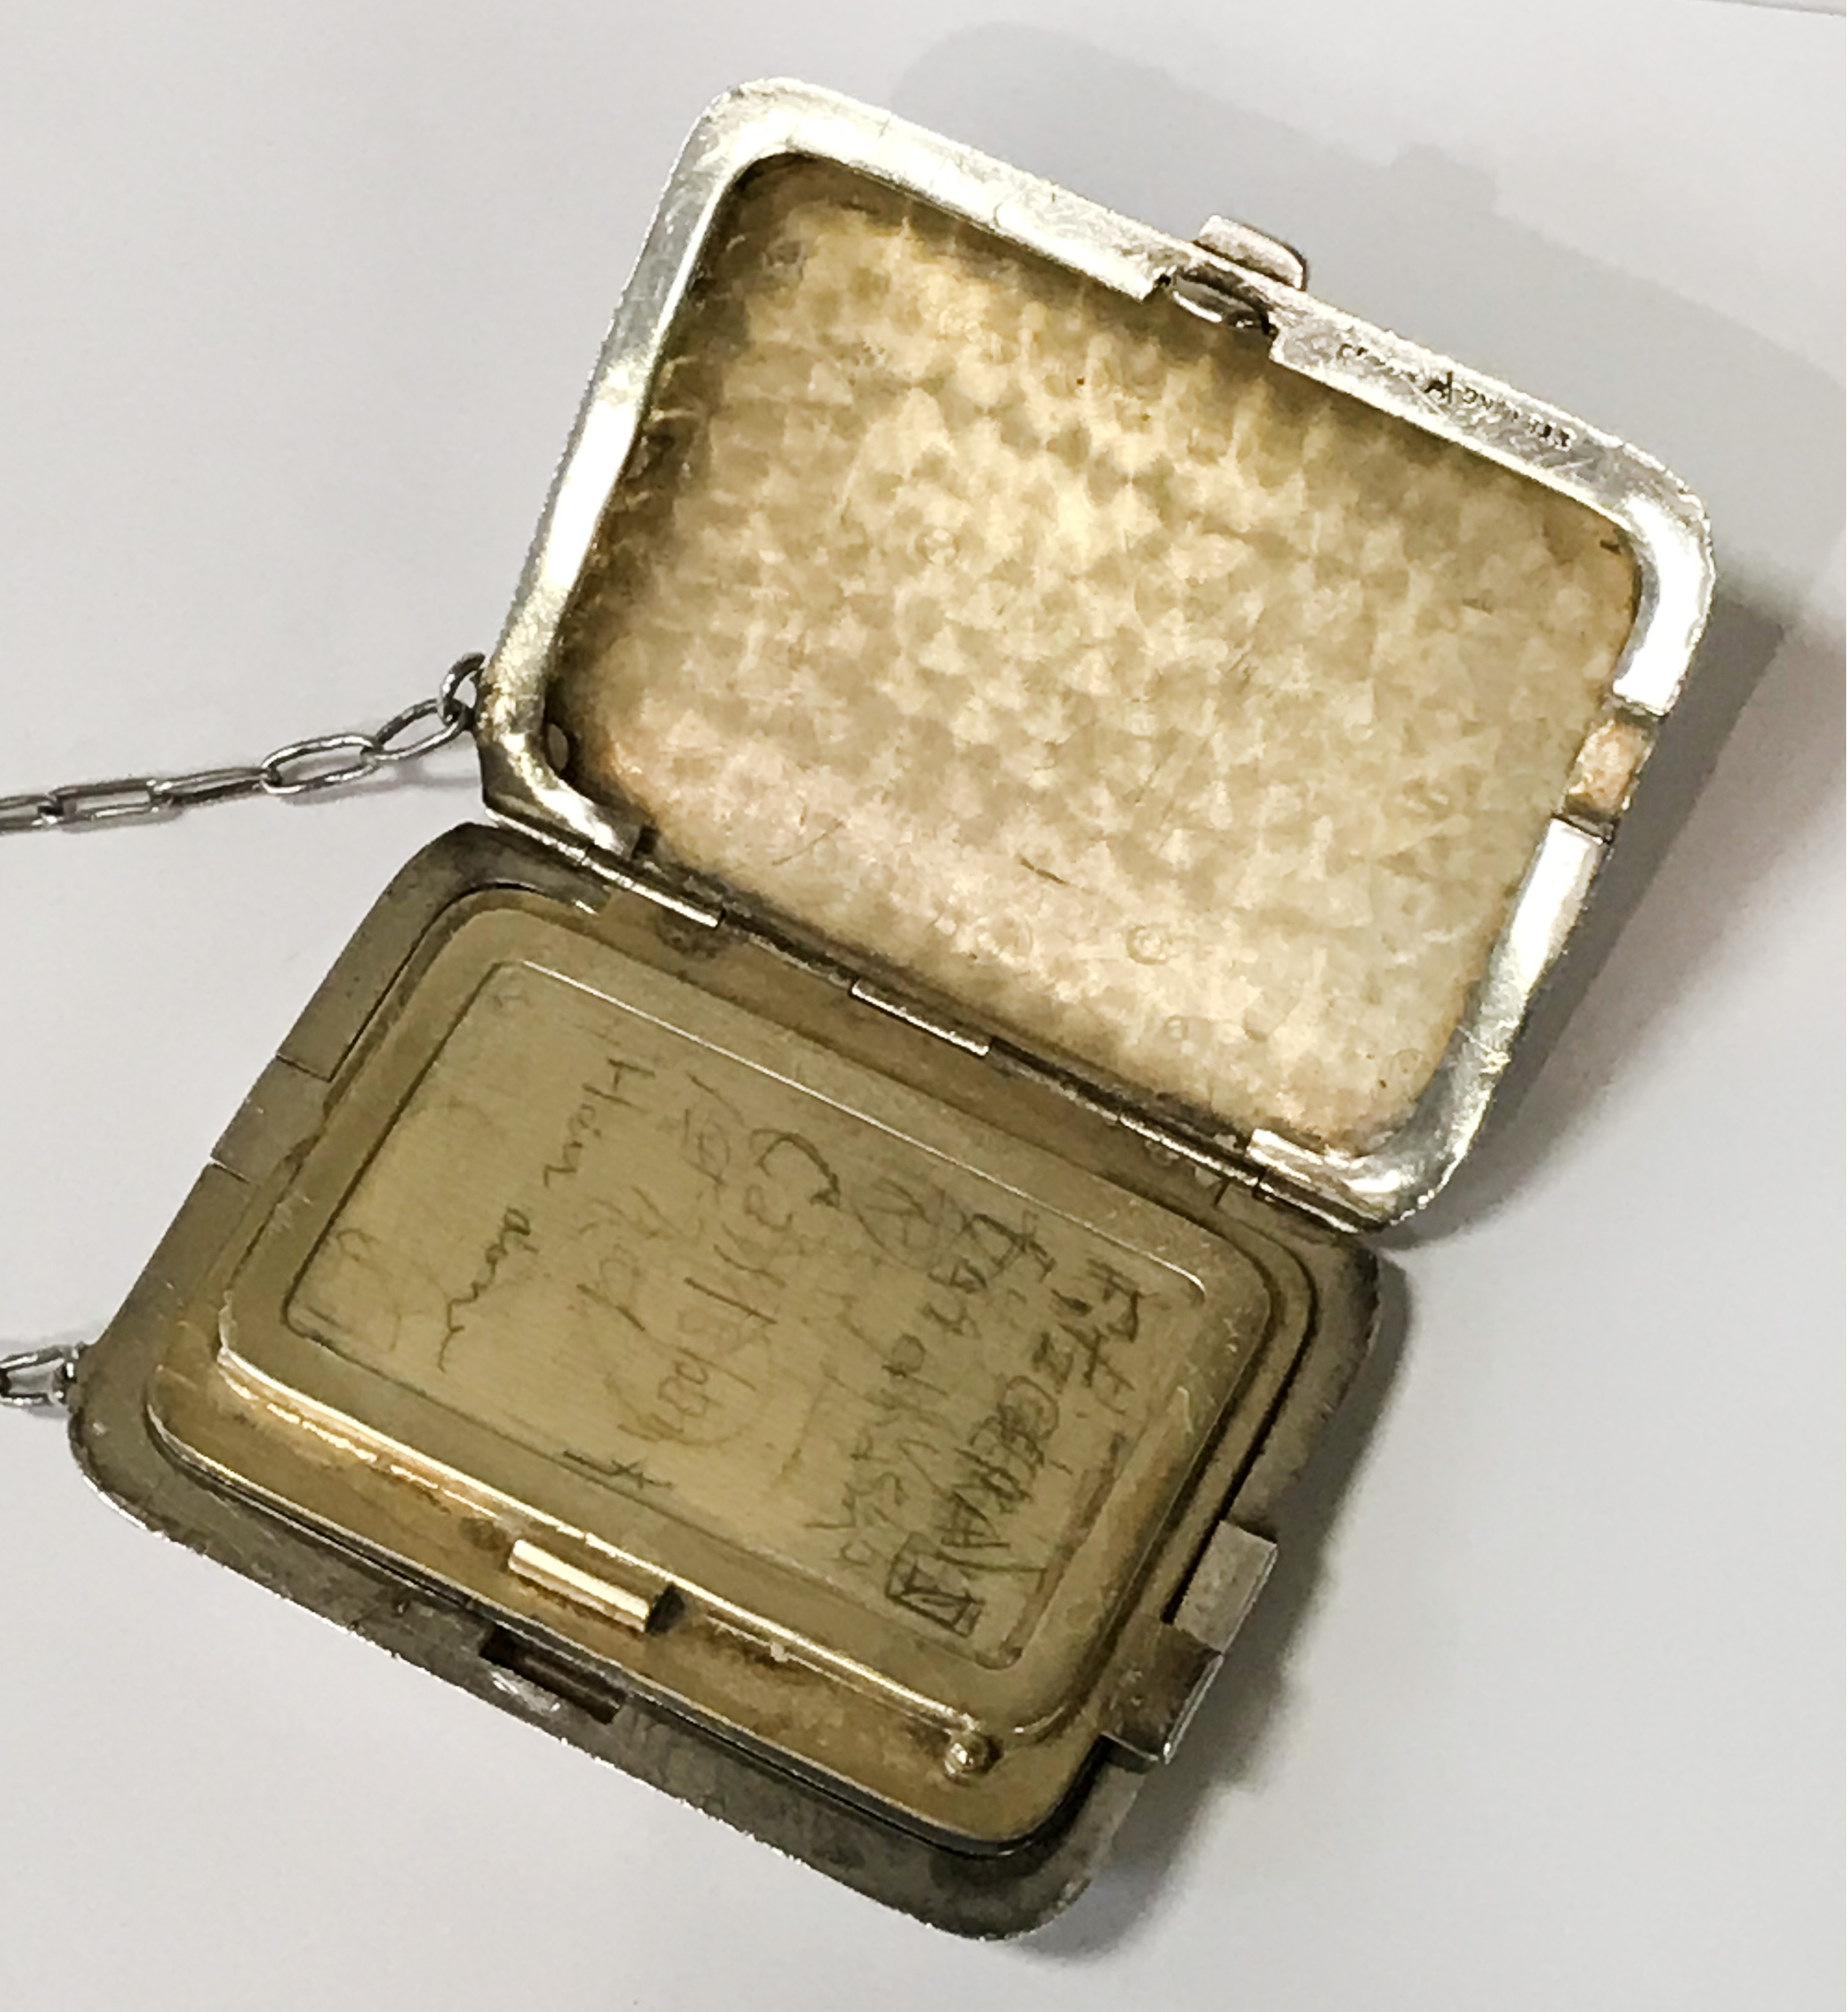 HM SILVER & GOLD INLAID COMPACT - 9CMS X 6.5CMS - Image 5 of 7